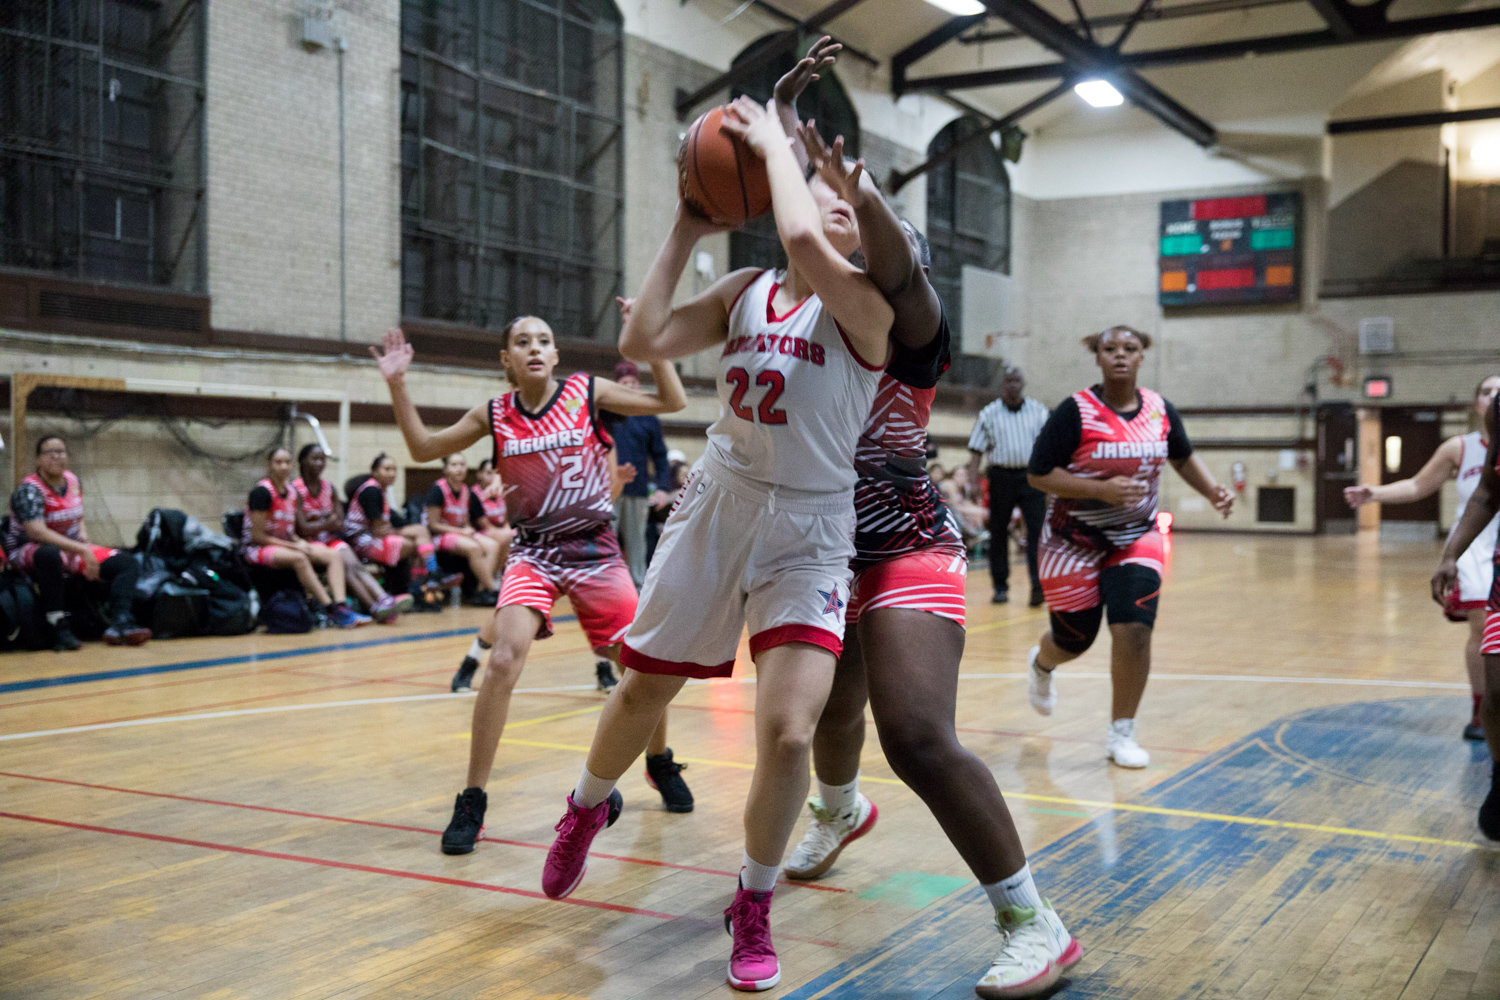 Emily Eljamal scored 14 points and hauled down a dozen rebounds in American Studies' 34-27 victory over Jane Addams last week to open the season 2-0.